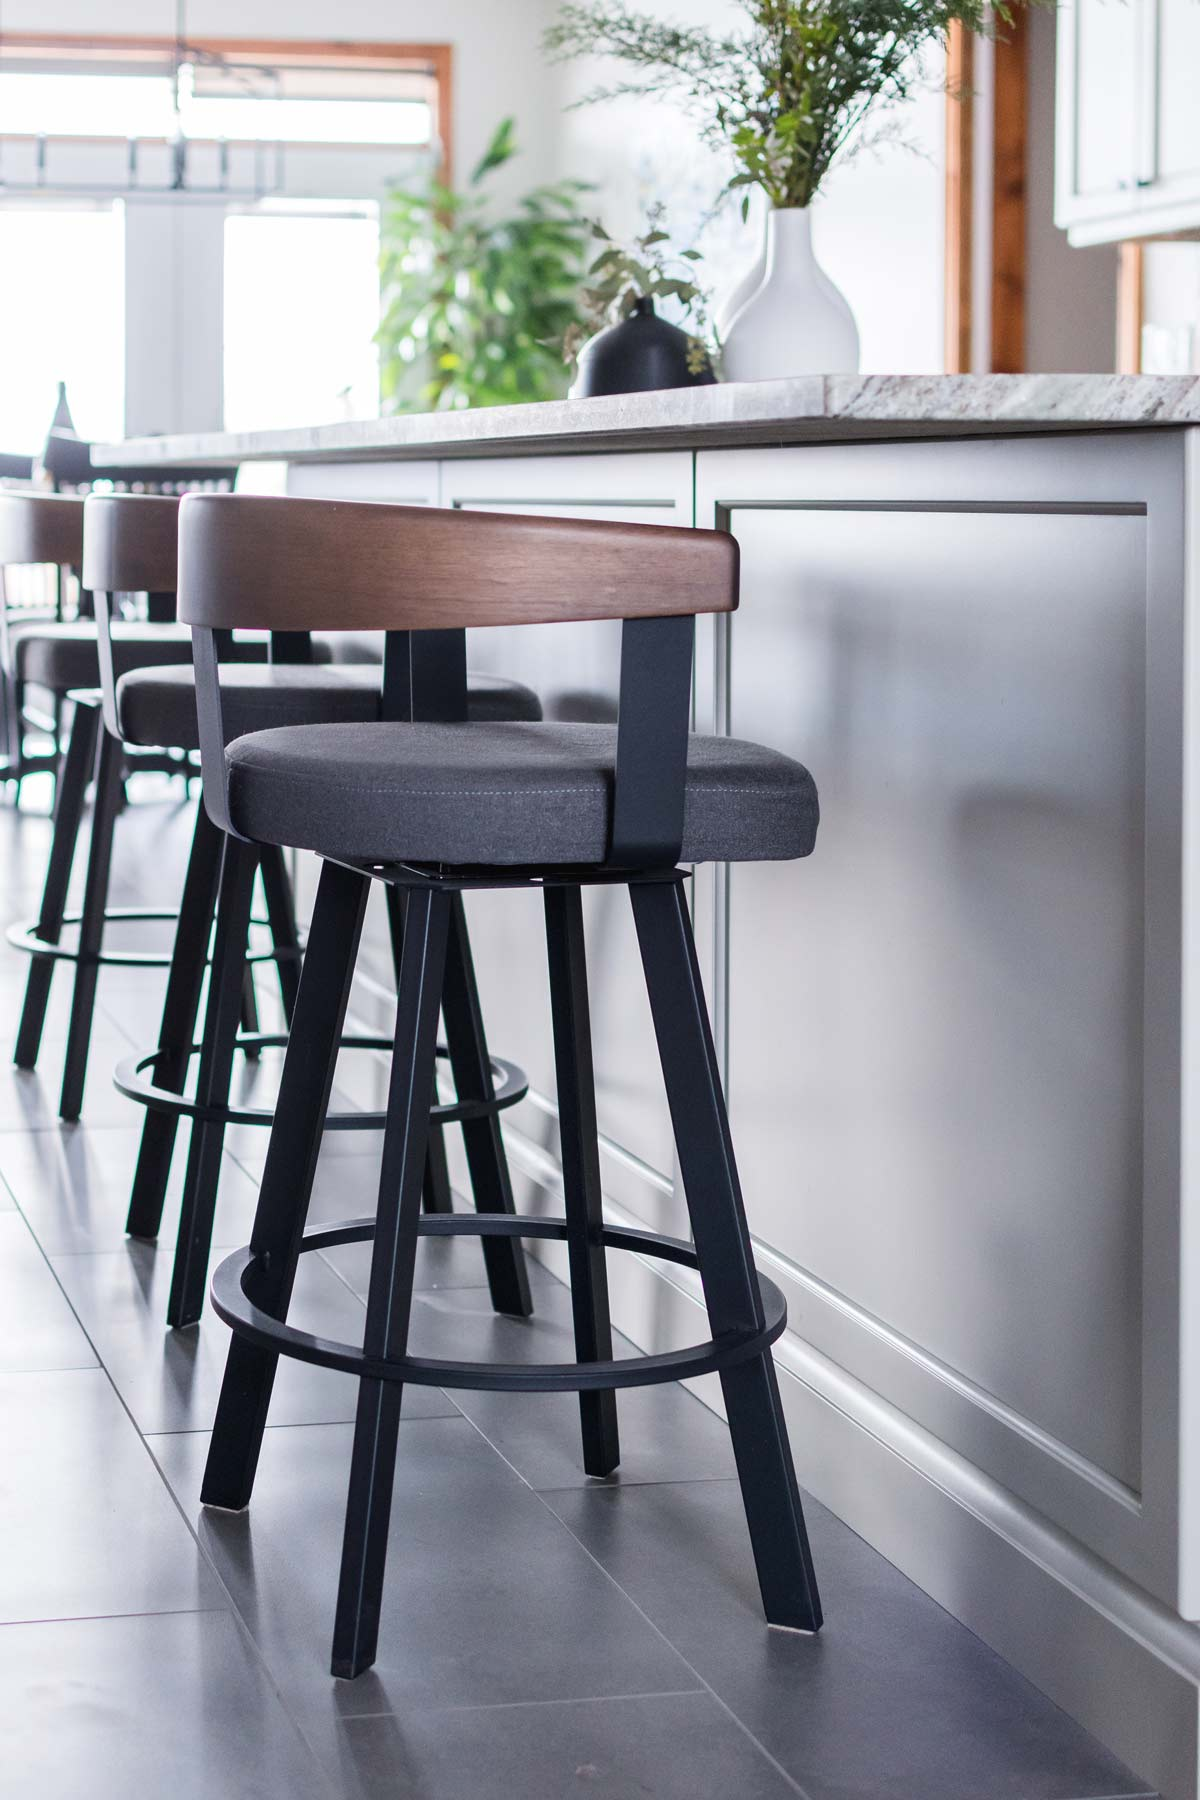 willow-lane-stools